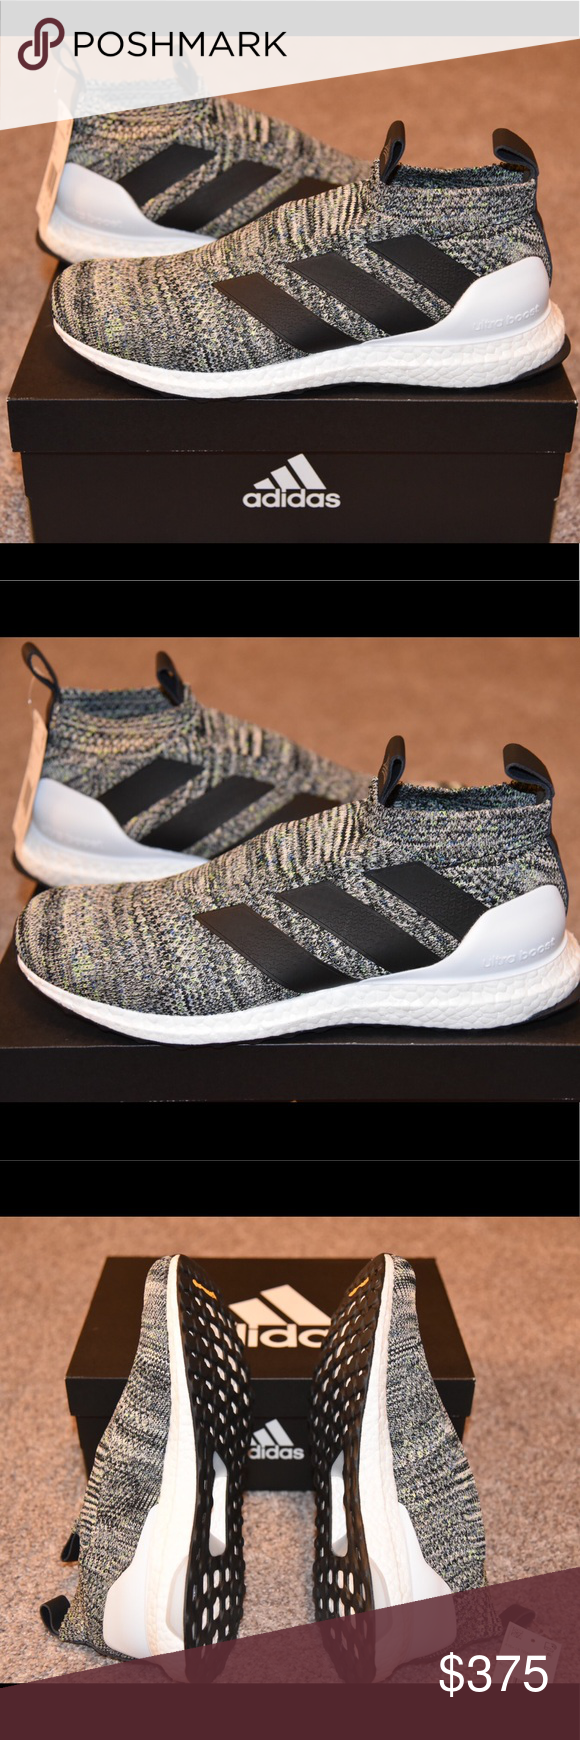 dbab7bd9a59 ADIDAS 16+ PURECONTROL MULTICOLOR ULTRABOOST SHOES BRAND NEW DEADSTOCK A 16+  OREO PURECONTROL ULTRABOOST SHOES. NEVER WORN COMES WITH BOX.